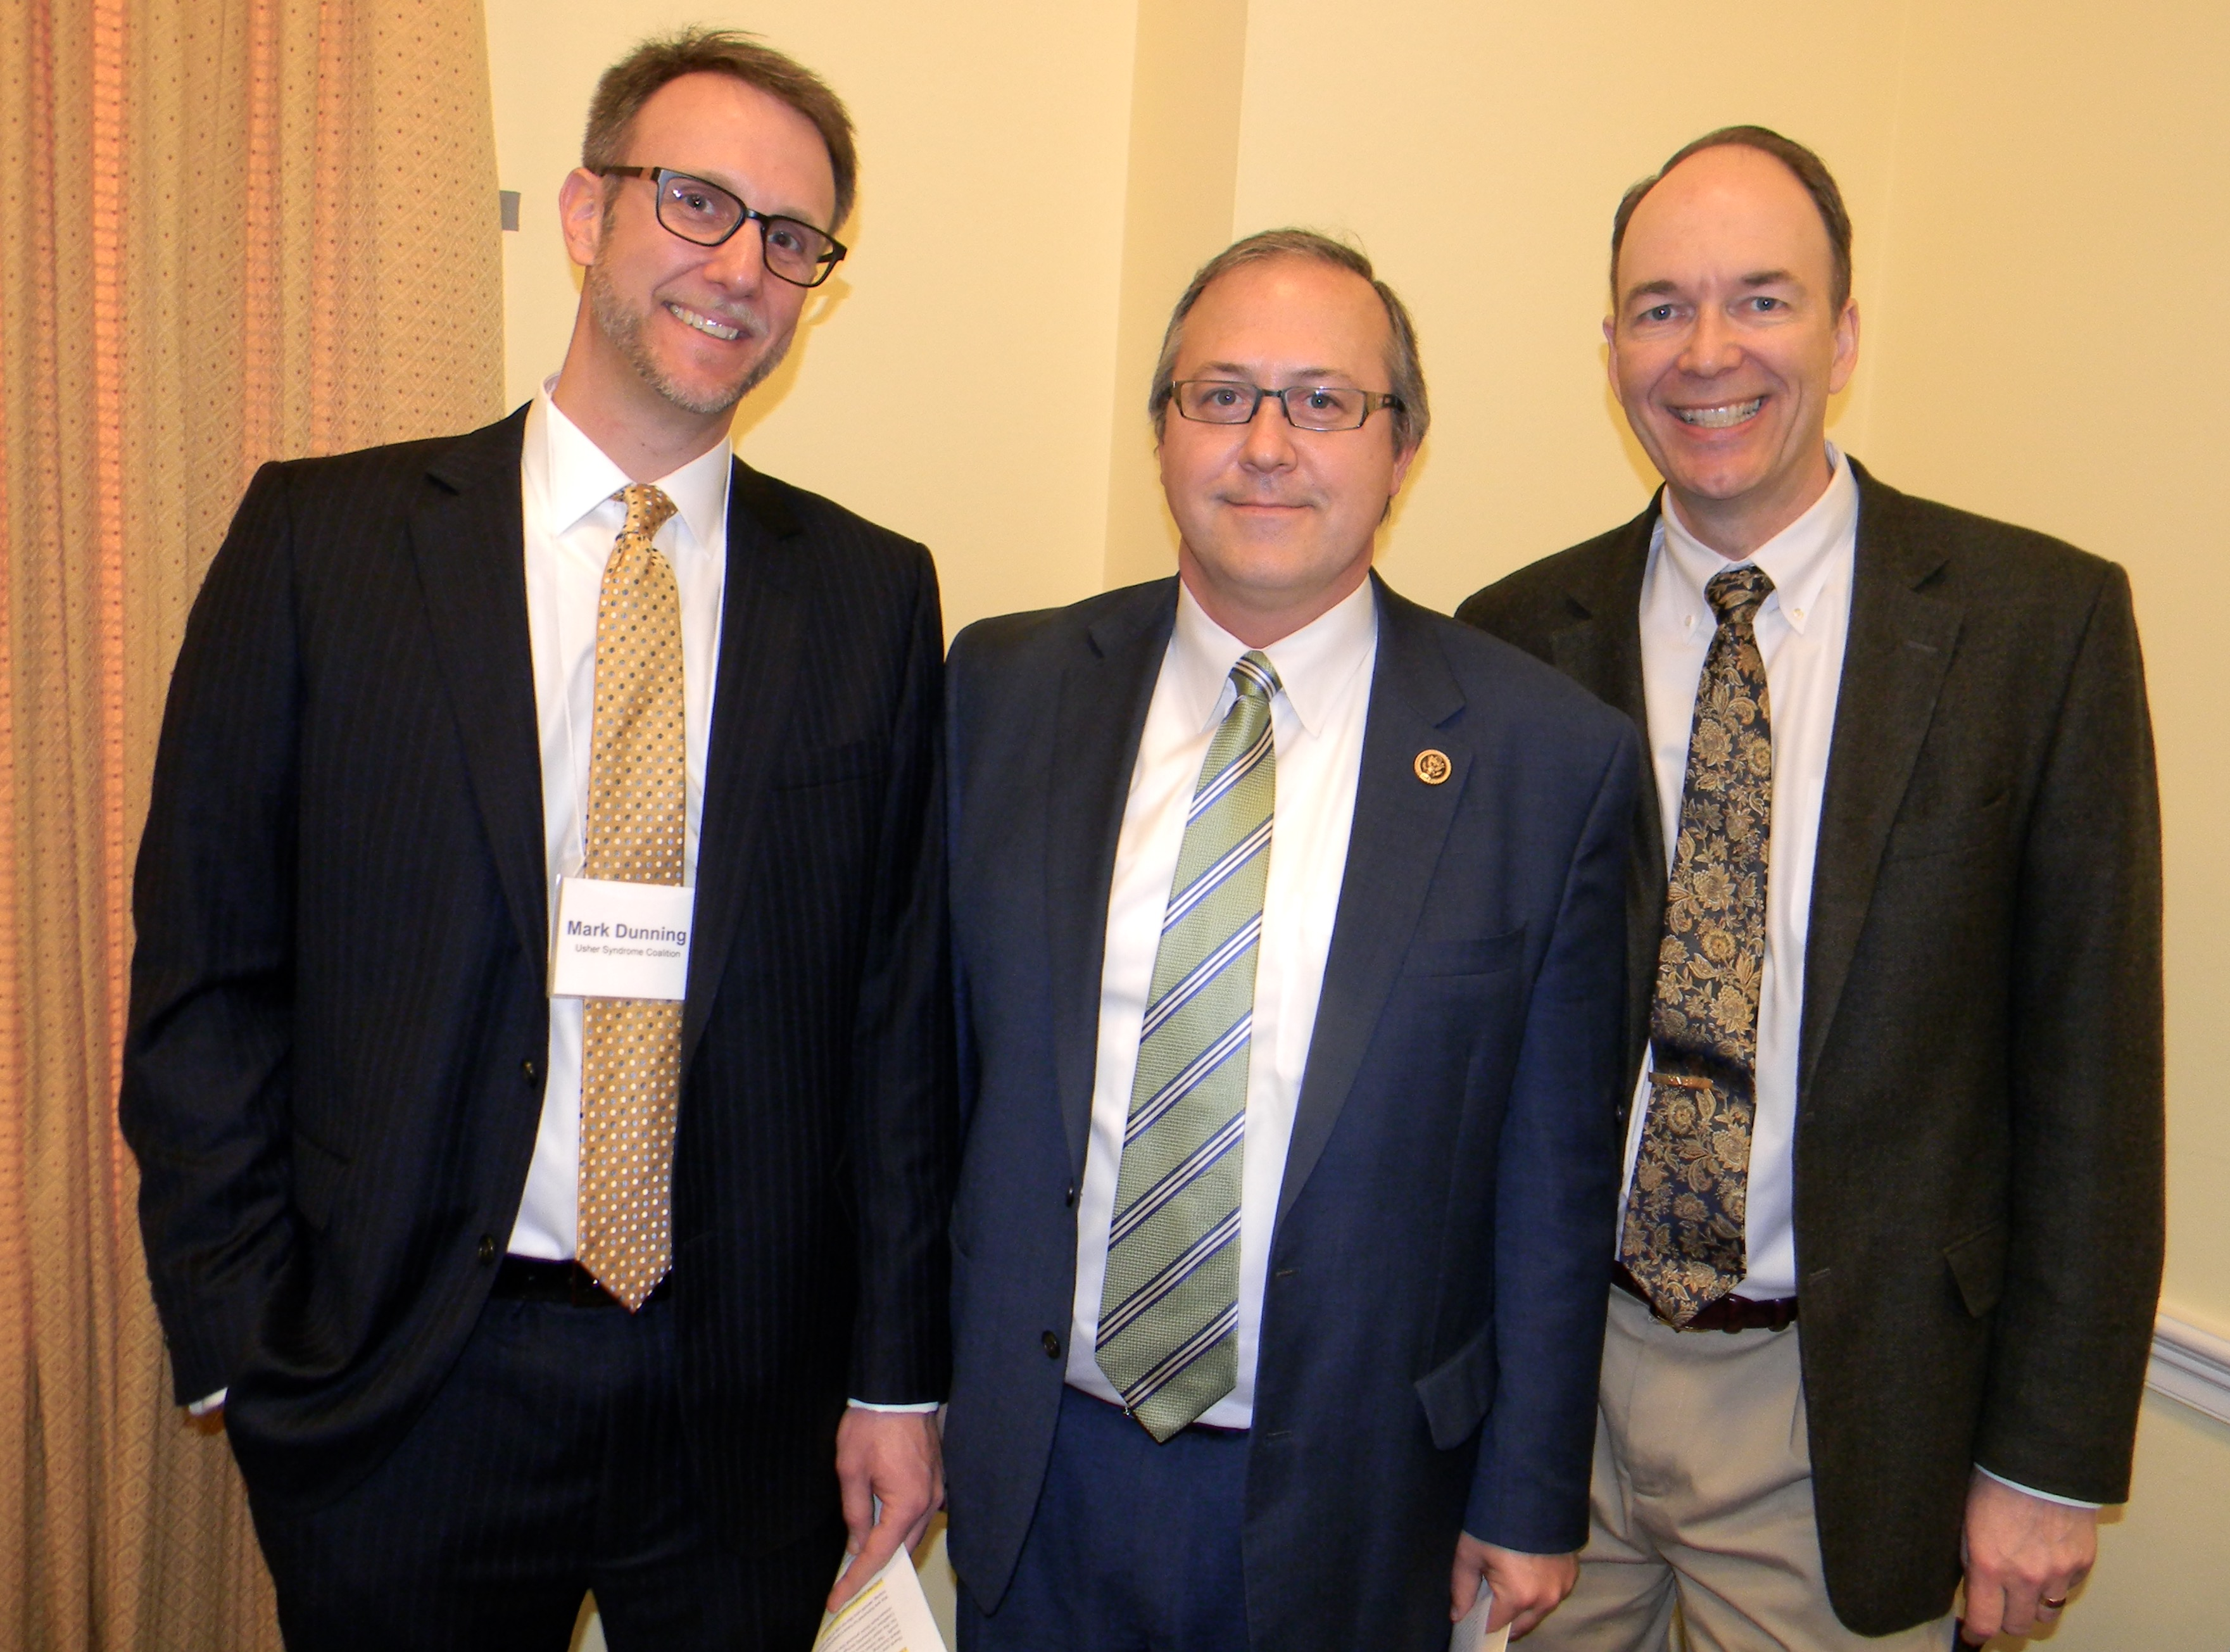 A picture of Mark Dunning, Congressman David Young, and Dr. Edwin Stone